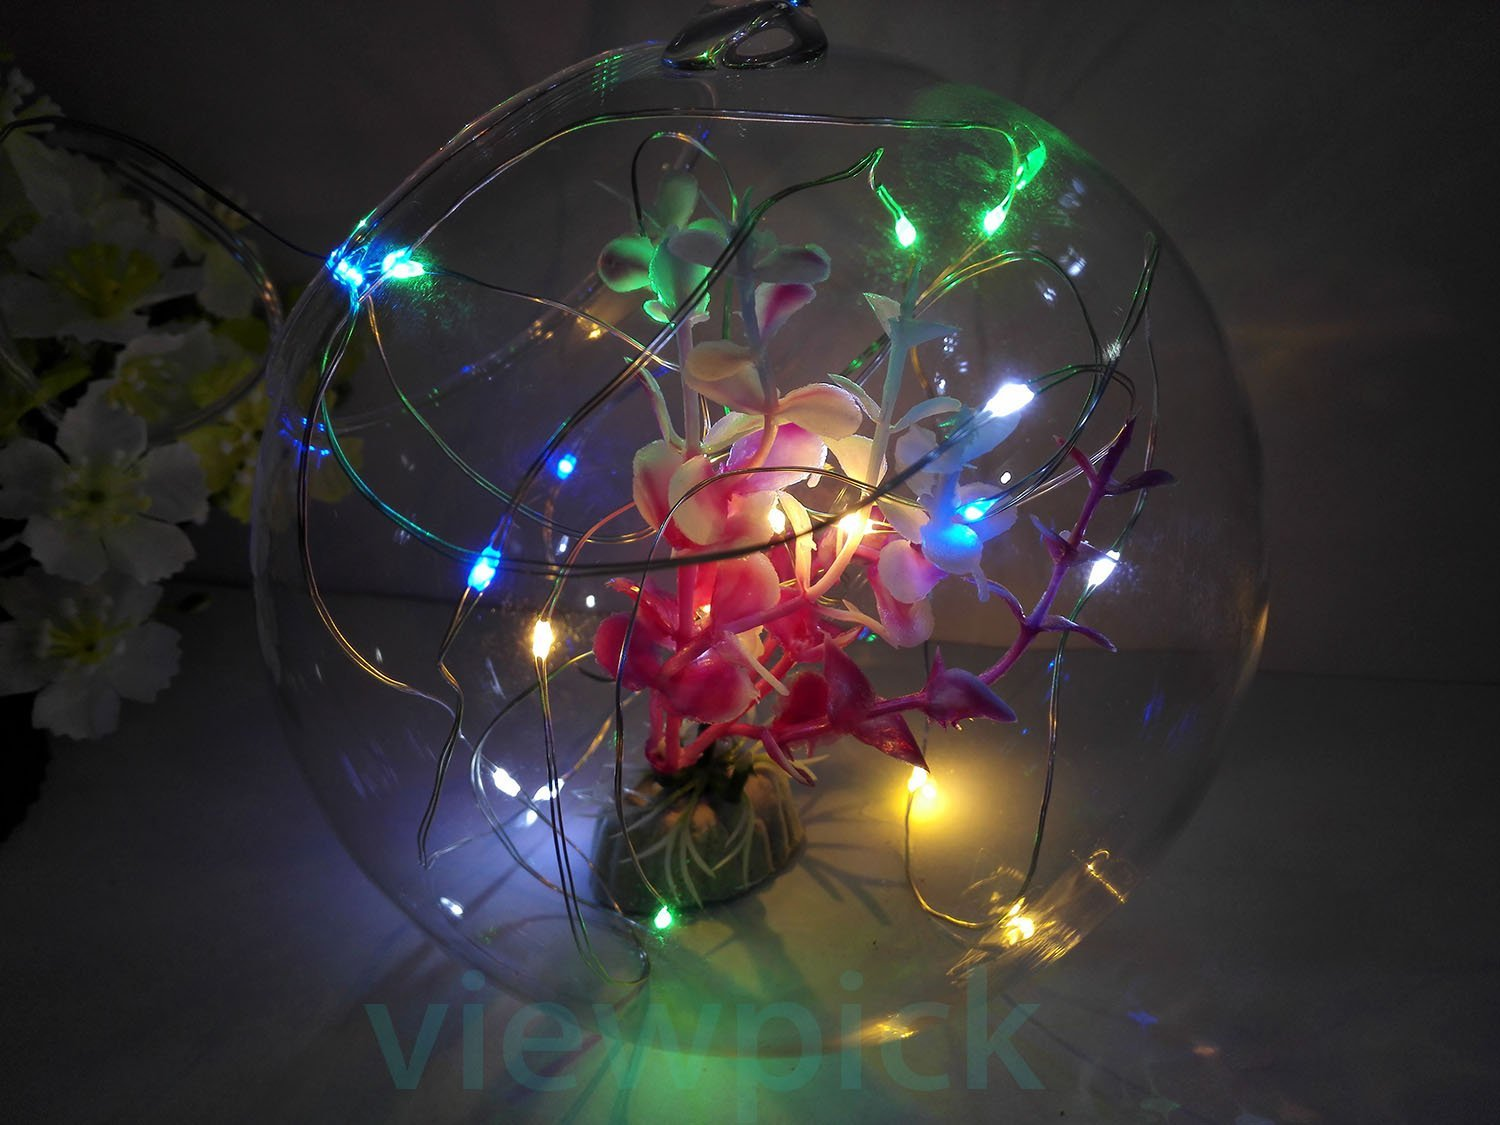 Viewpick 7ft 20 LEDs Multicolor Fairy Lights Silver Wire String Lights AA Battery Powered Led String Starry Light for Outdoor Decorative Halloween Christmas Wedding Parties Activities